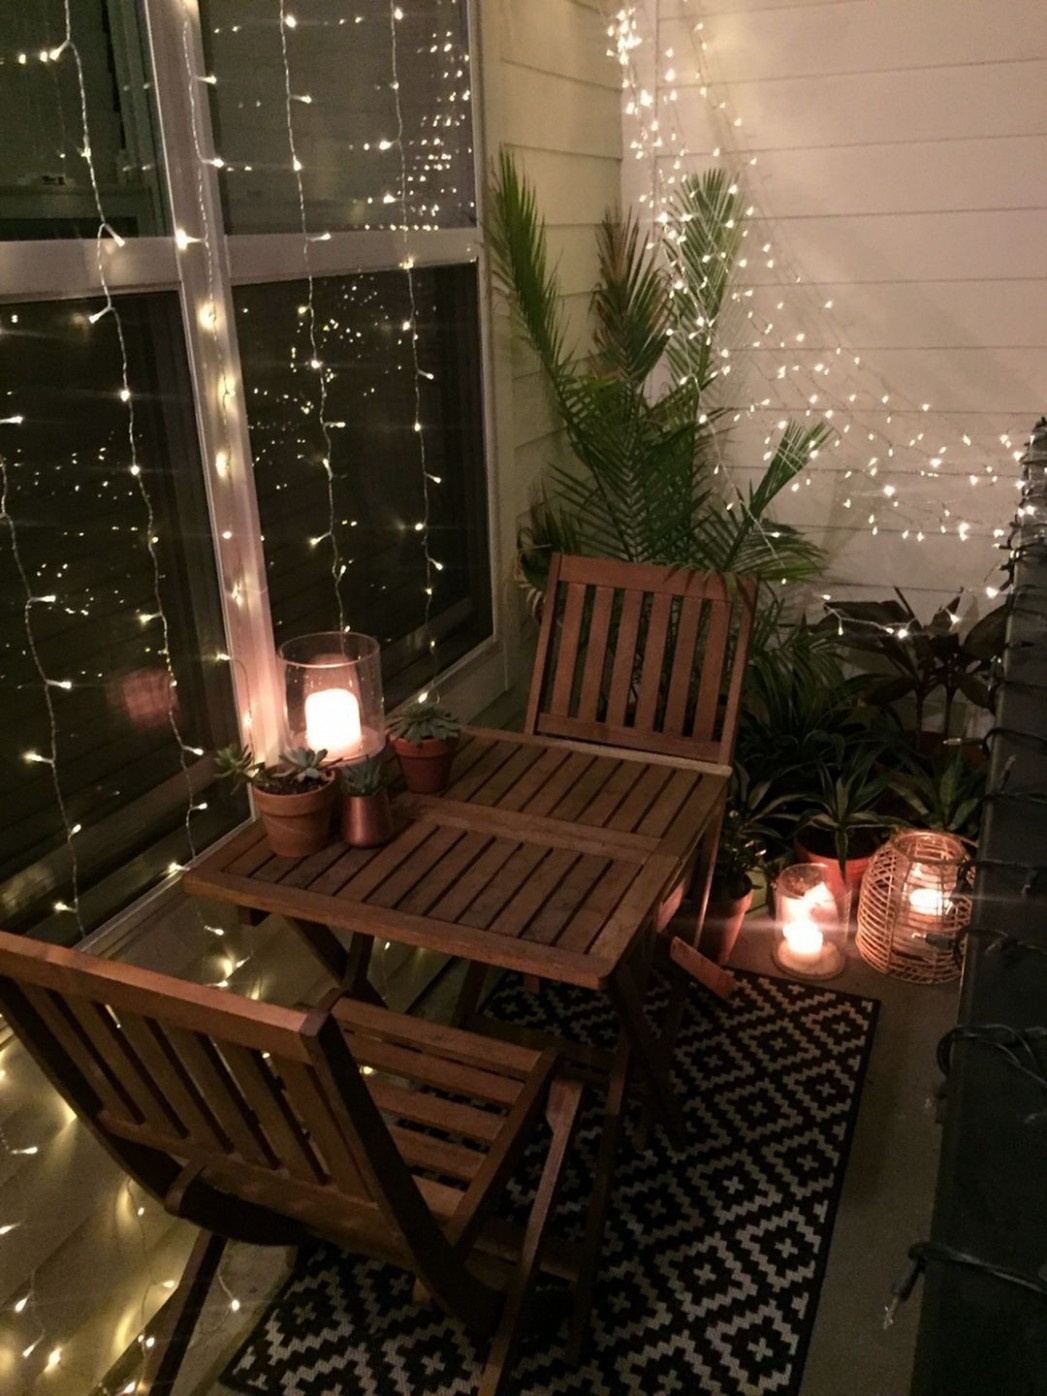 11 Charming Christmas Decorations for Small Apartment Balcony  - Apartment Balcony Decorating Ideas Christmas